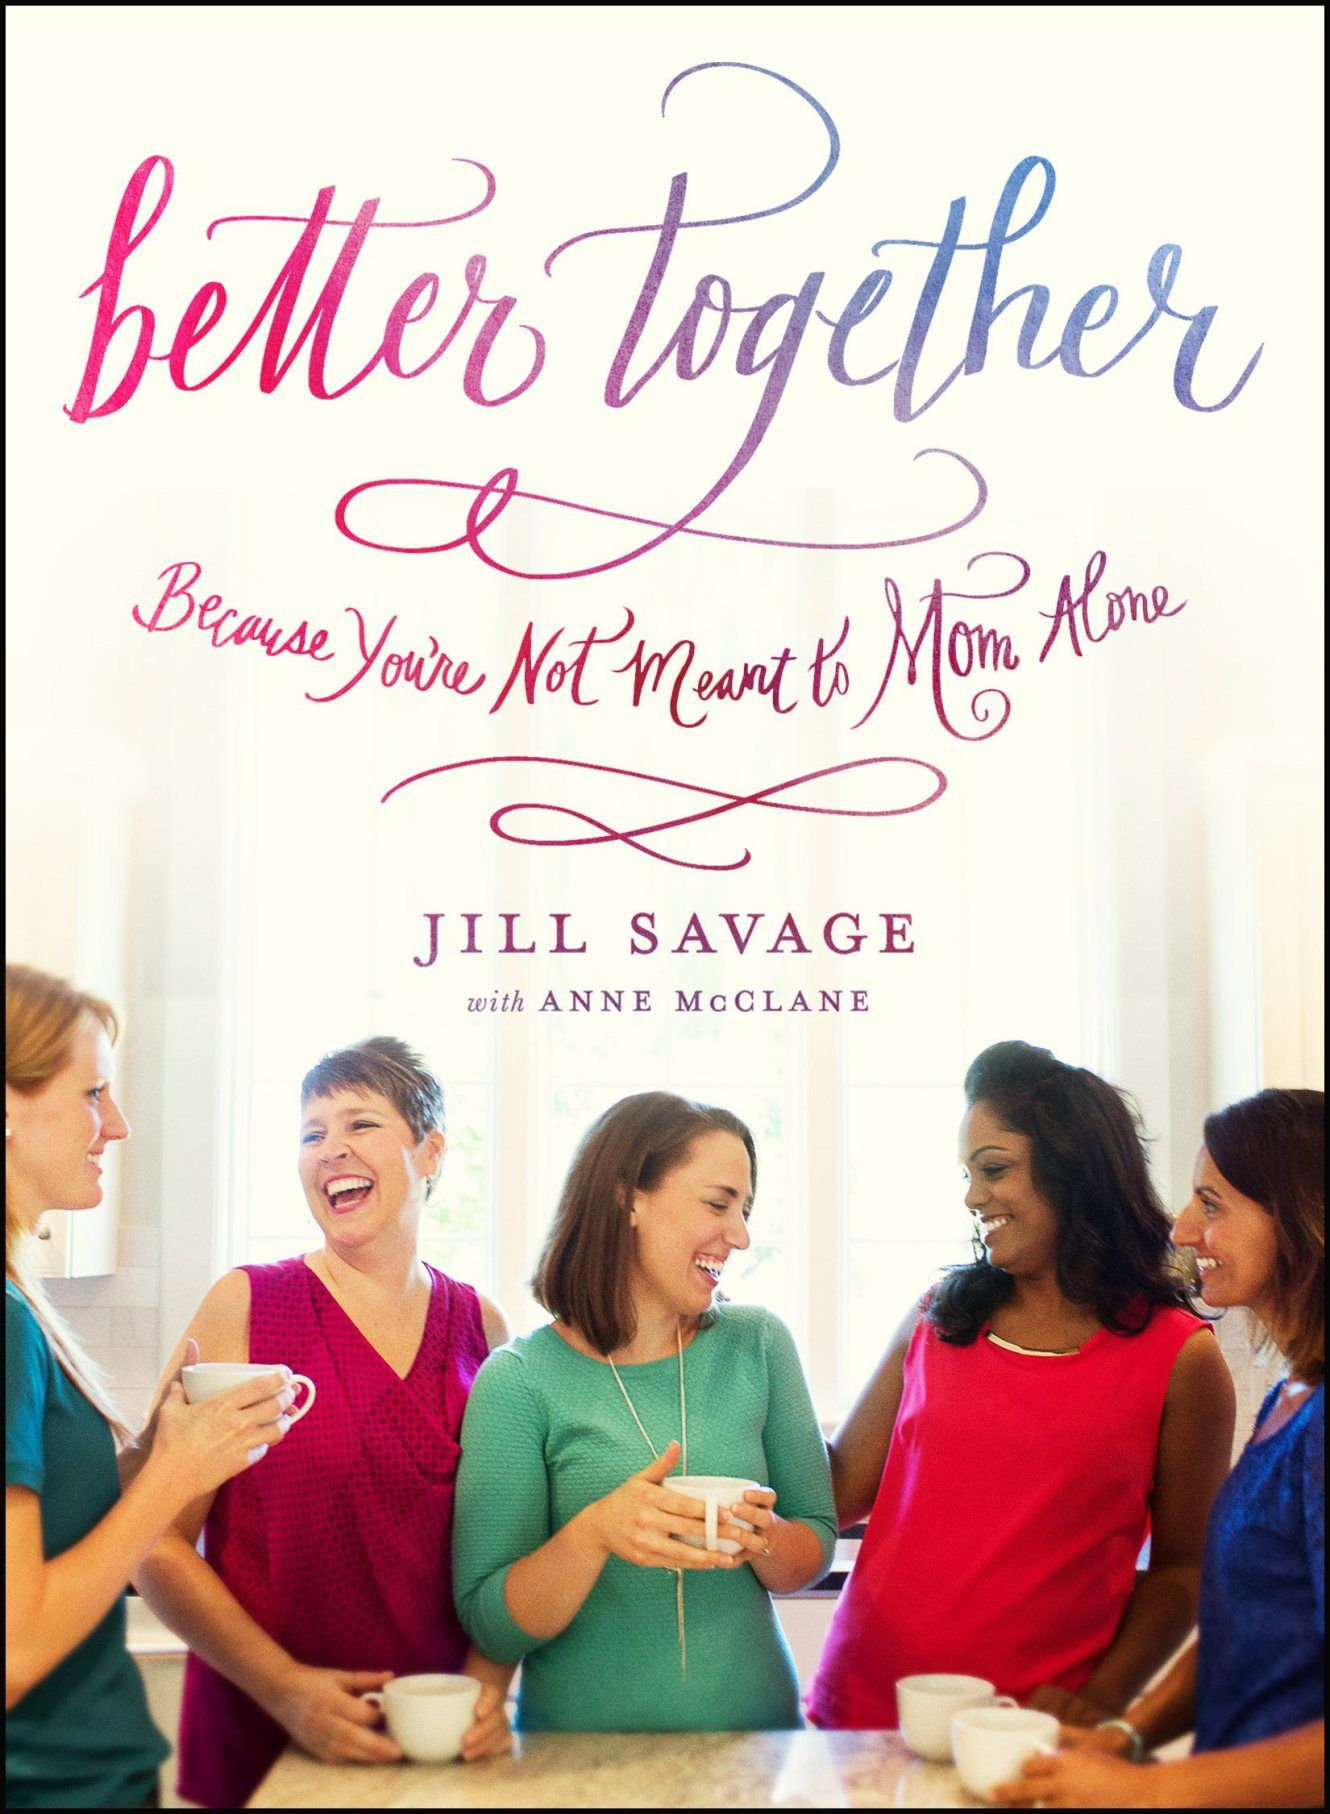 better together :: because you're not meant to mom alone by Jill Savage